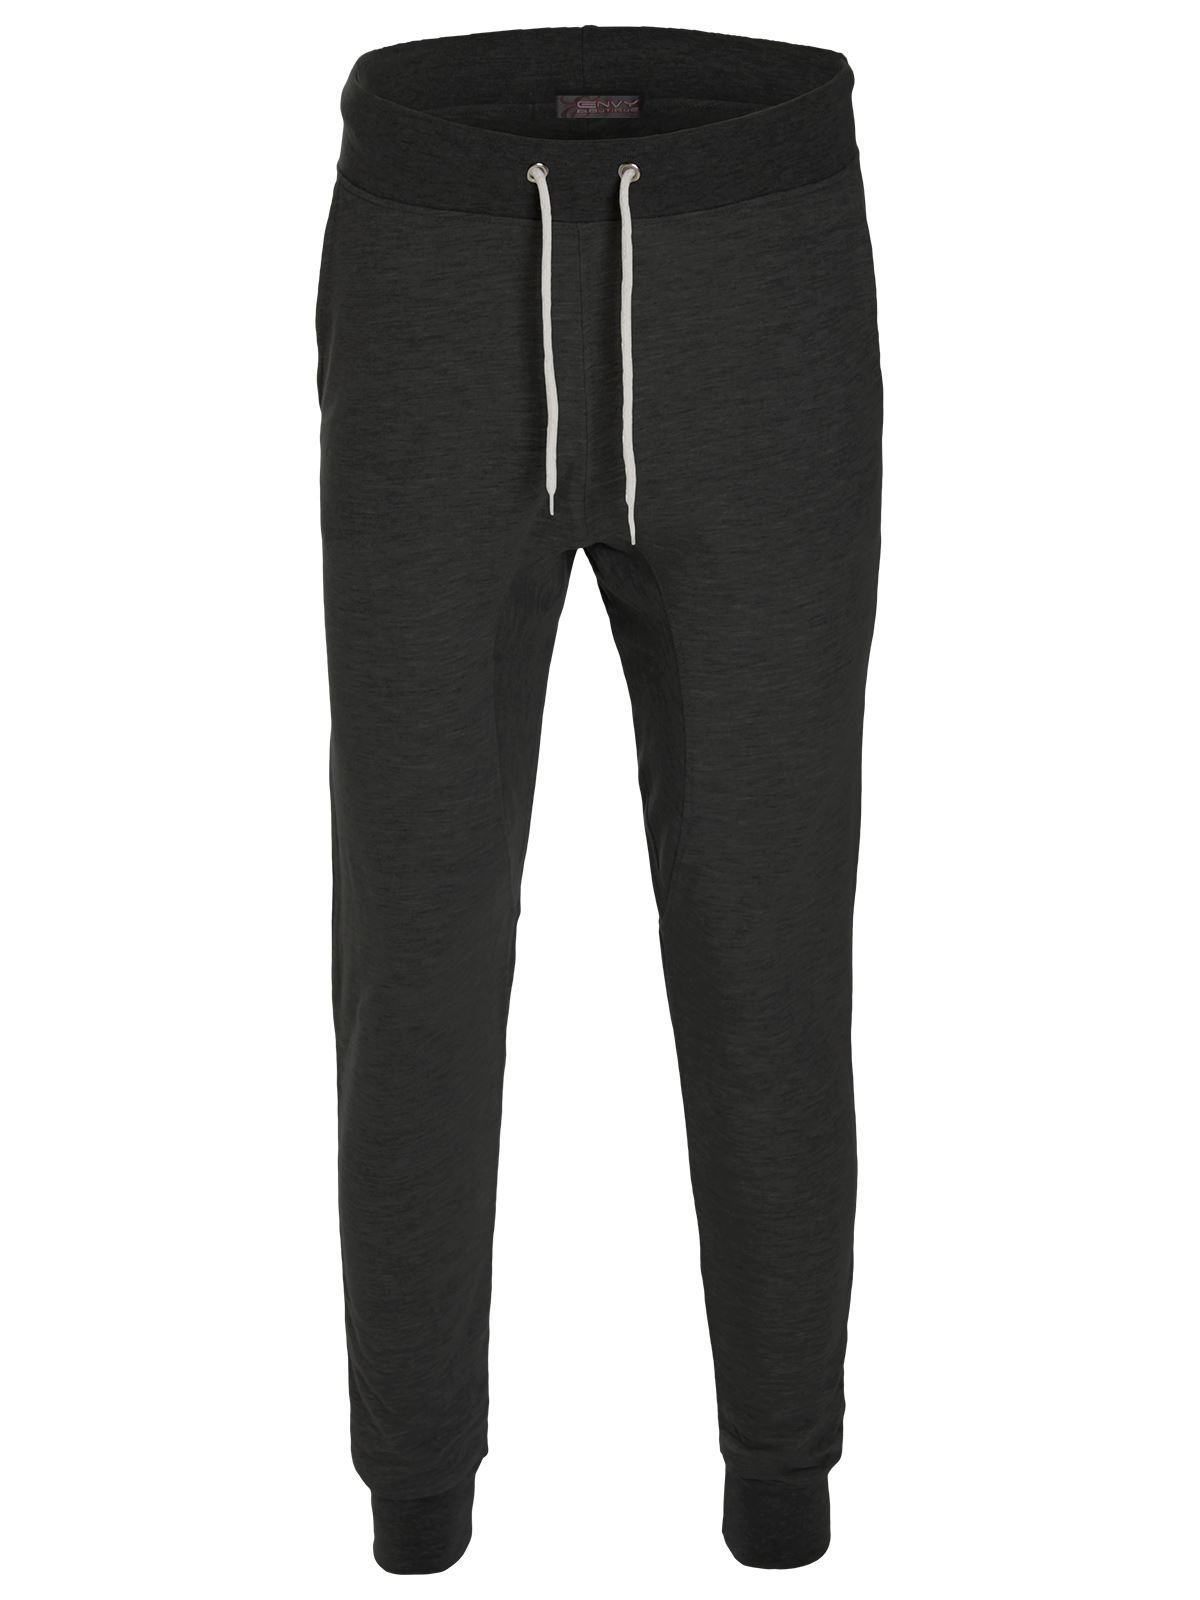 Find great deals on eBay for mens jogging pants. Shop with confidence. Skip to main content. eBay: Mens Slim Fit Tracksuit Bottoms Skinny Jogging Joggers Sweat Pants Camo Trousers. Unbranded. $ Mens Slim Fit Sports Gym Pants Jogging Running Trousers Tracksuit Sweatpants us. Brand New. $ Buy It Now.